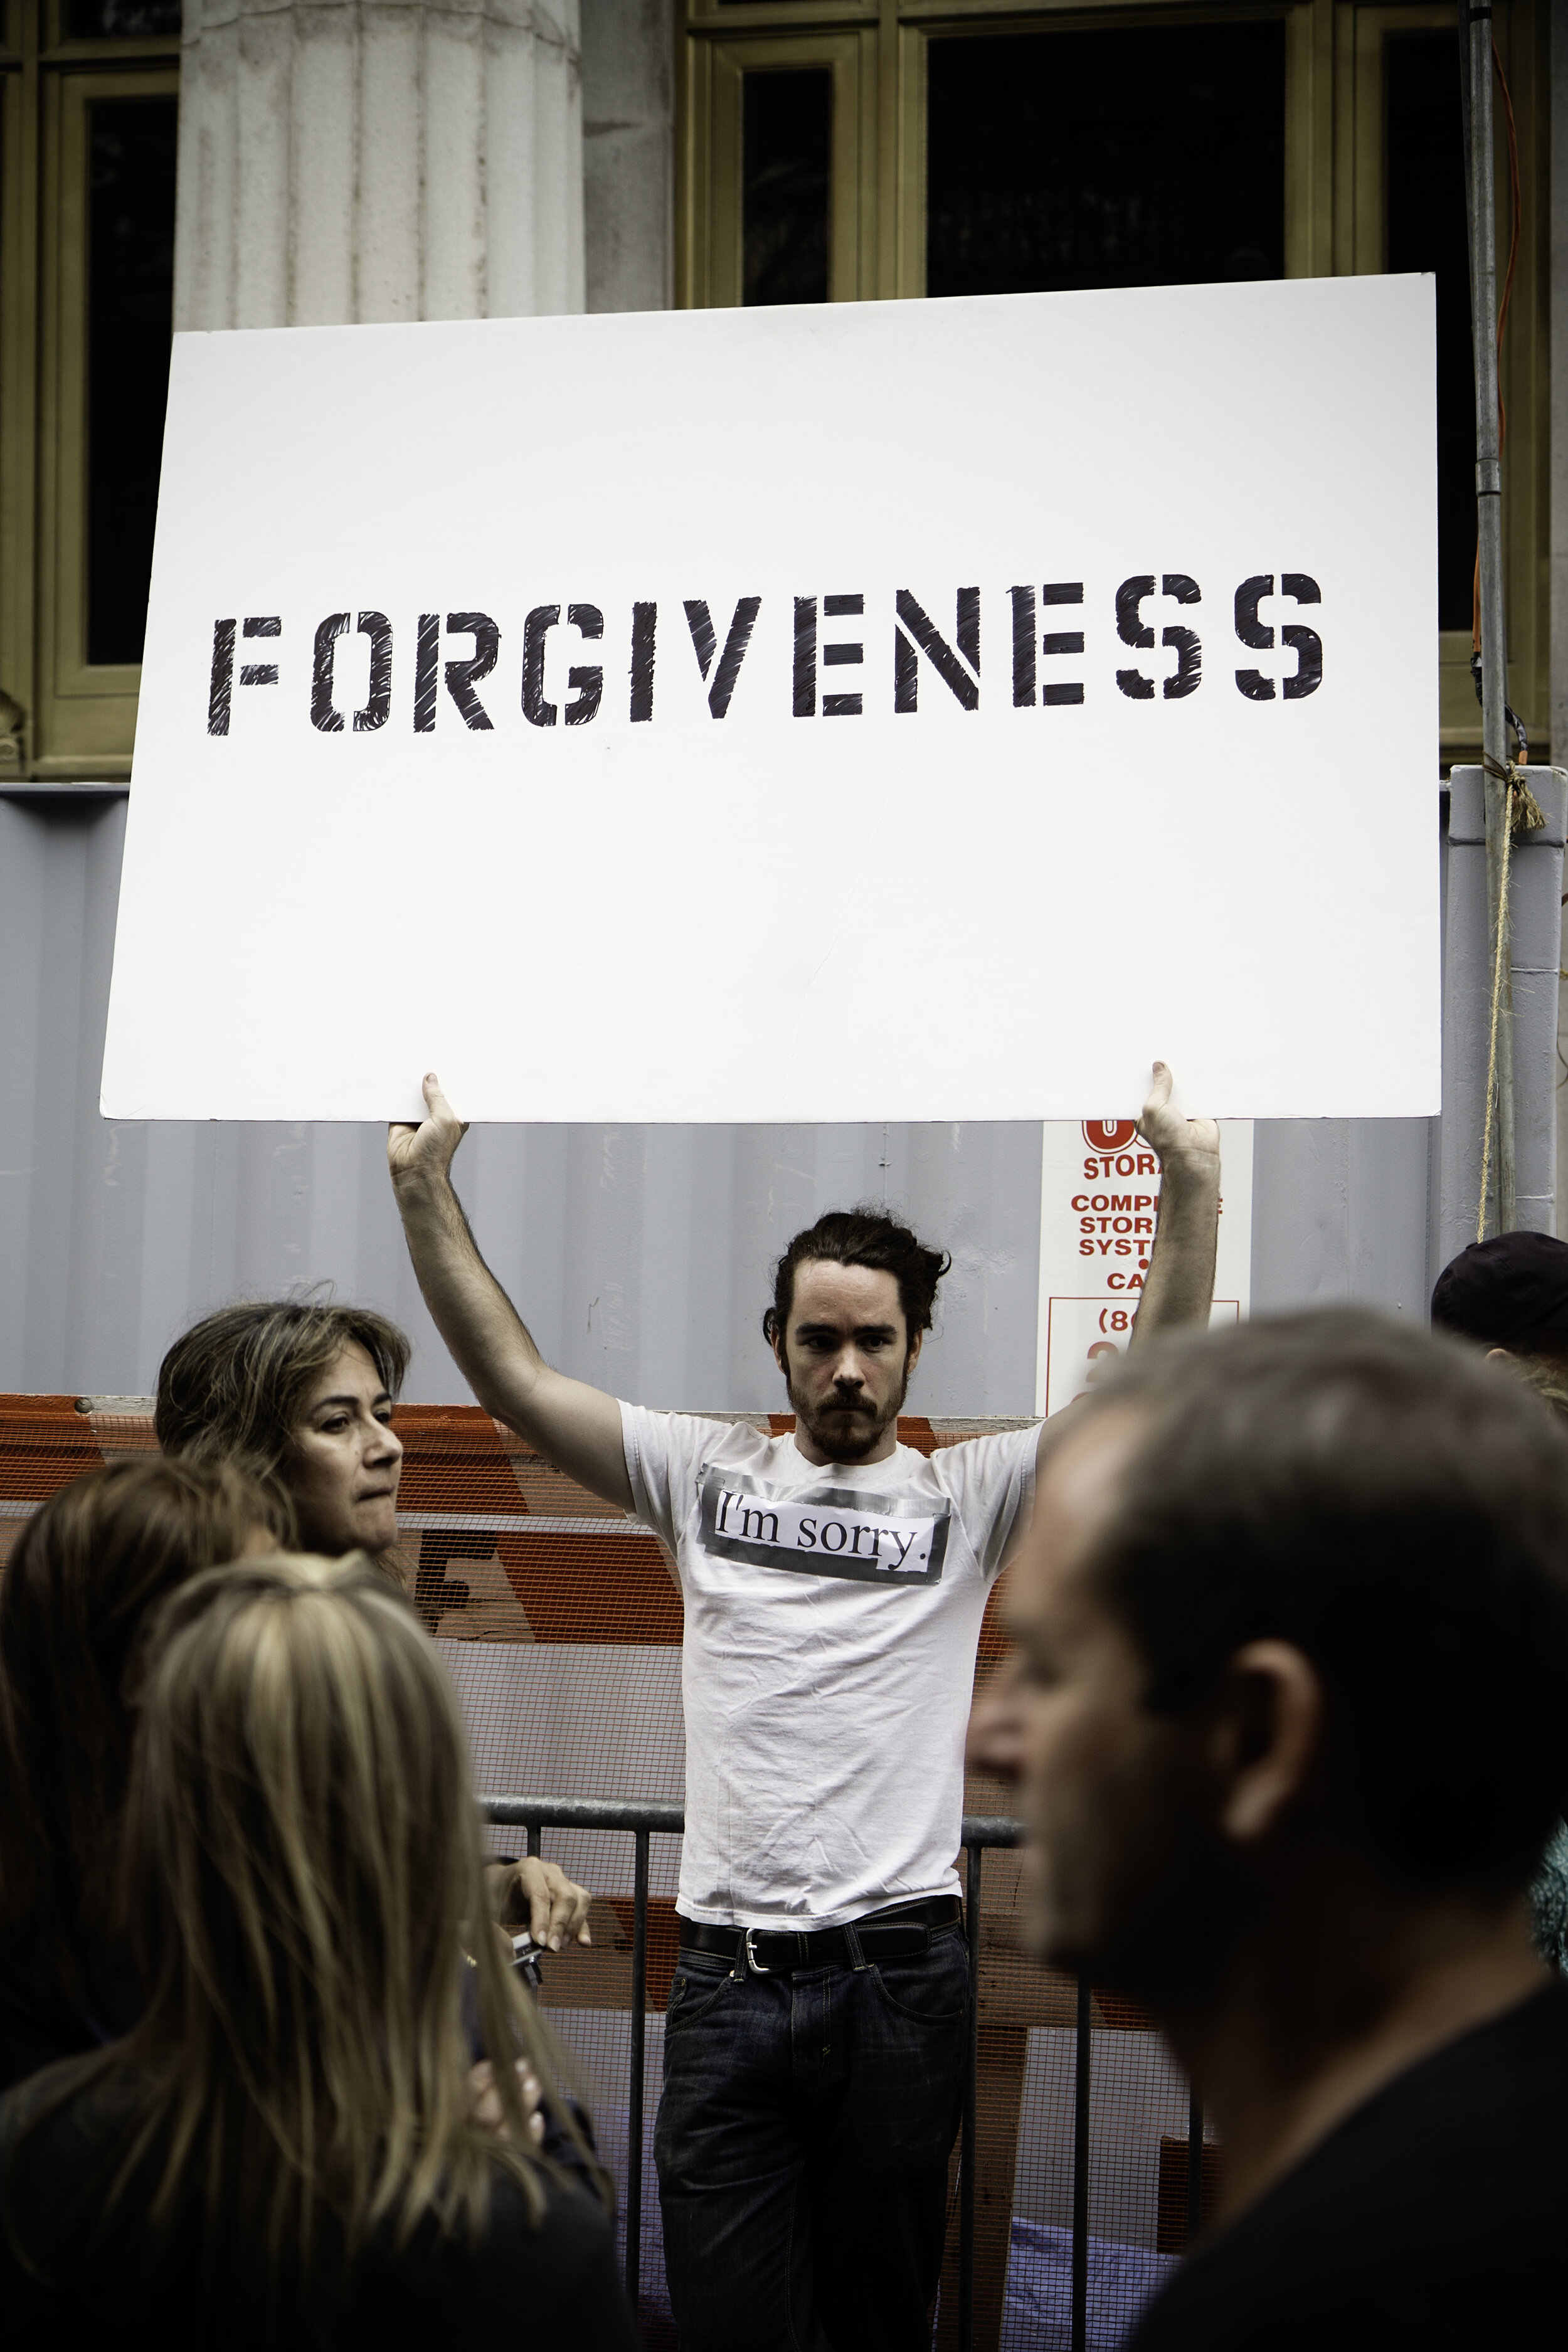 Forgiveness is huge in recovery